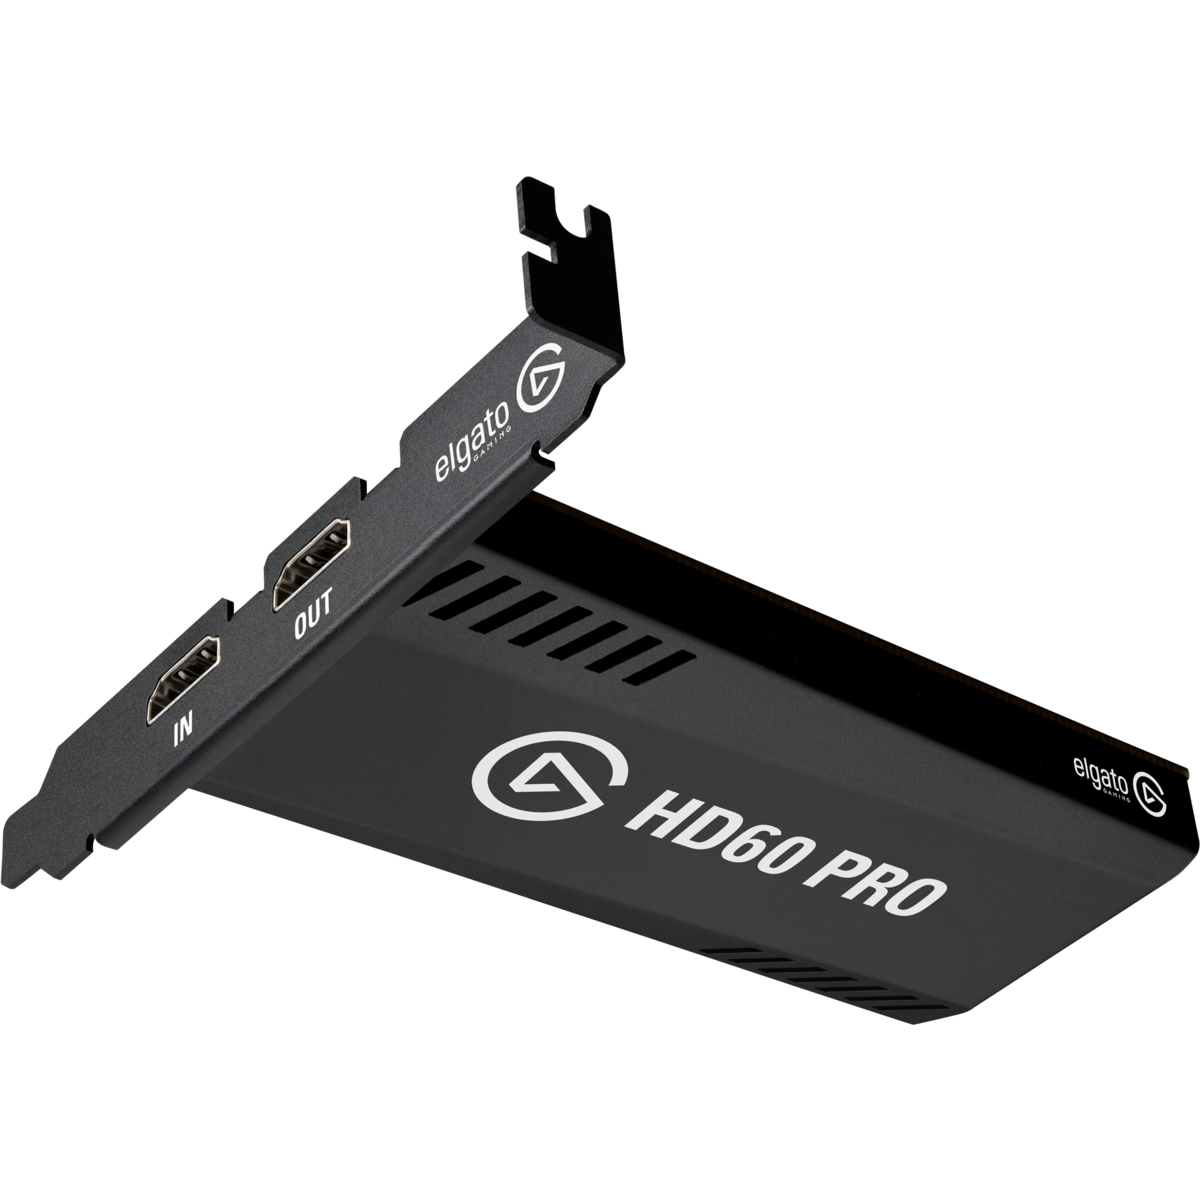 Gallery Game Capture HD60 Pro Device 04